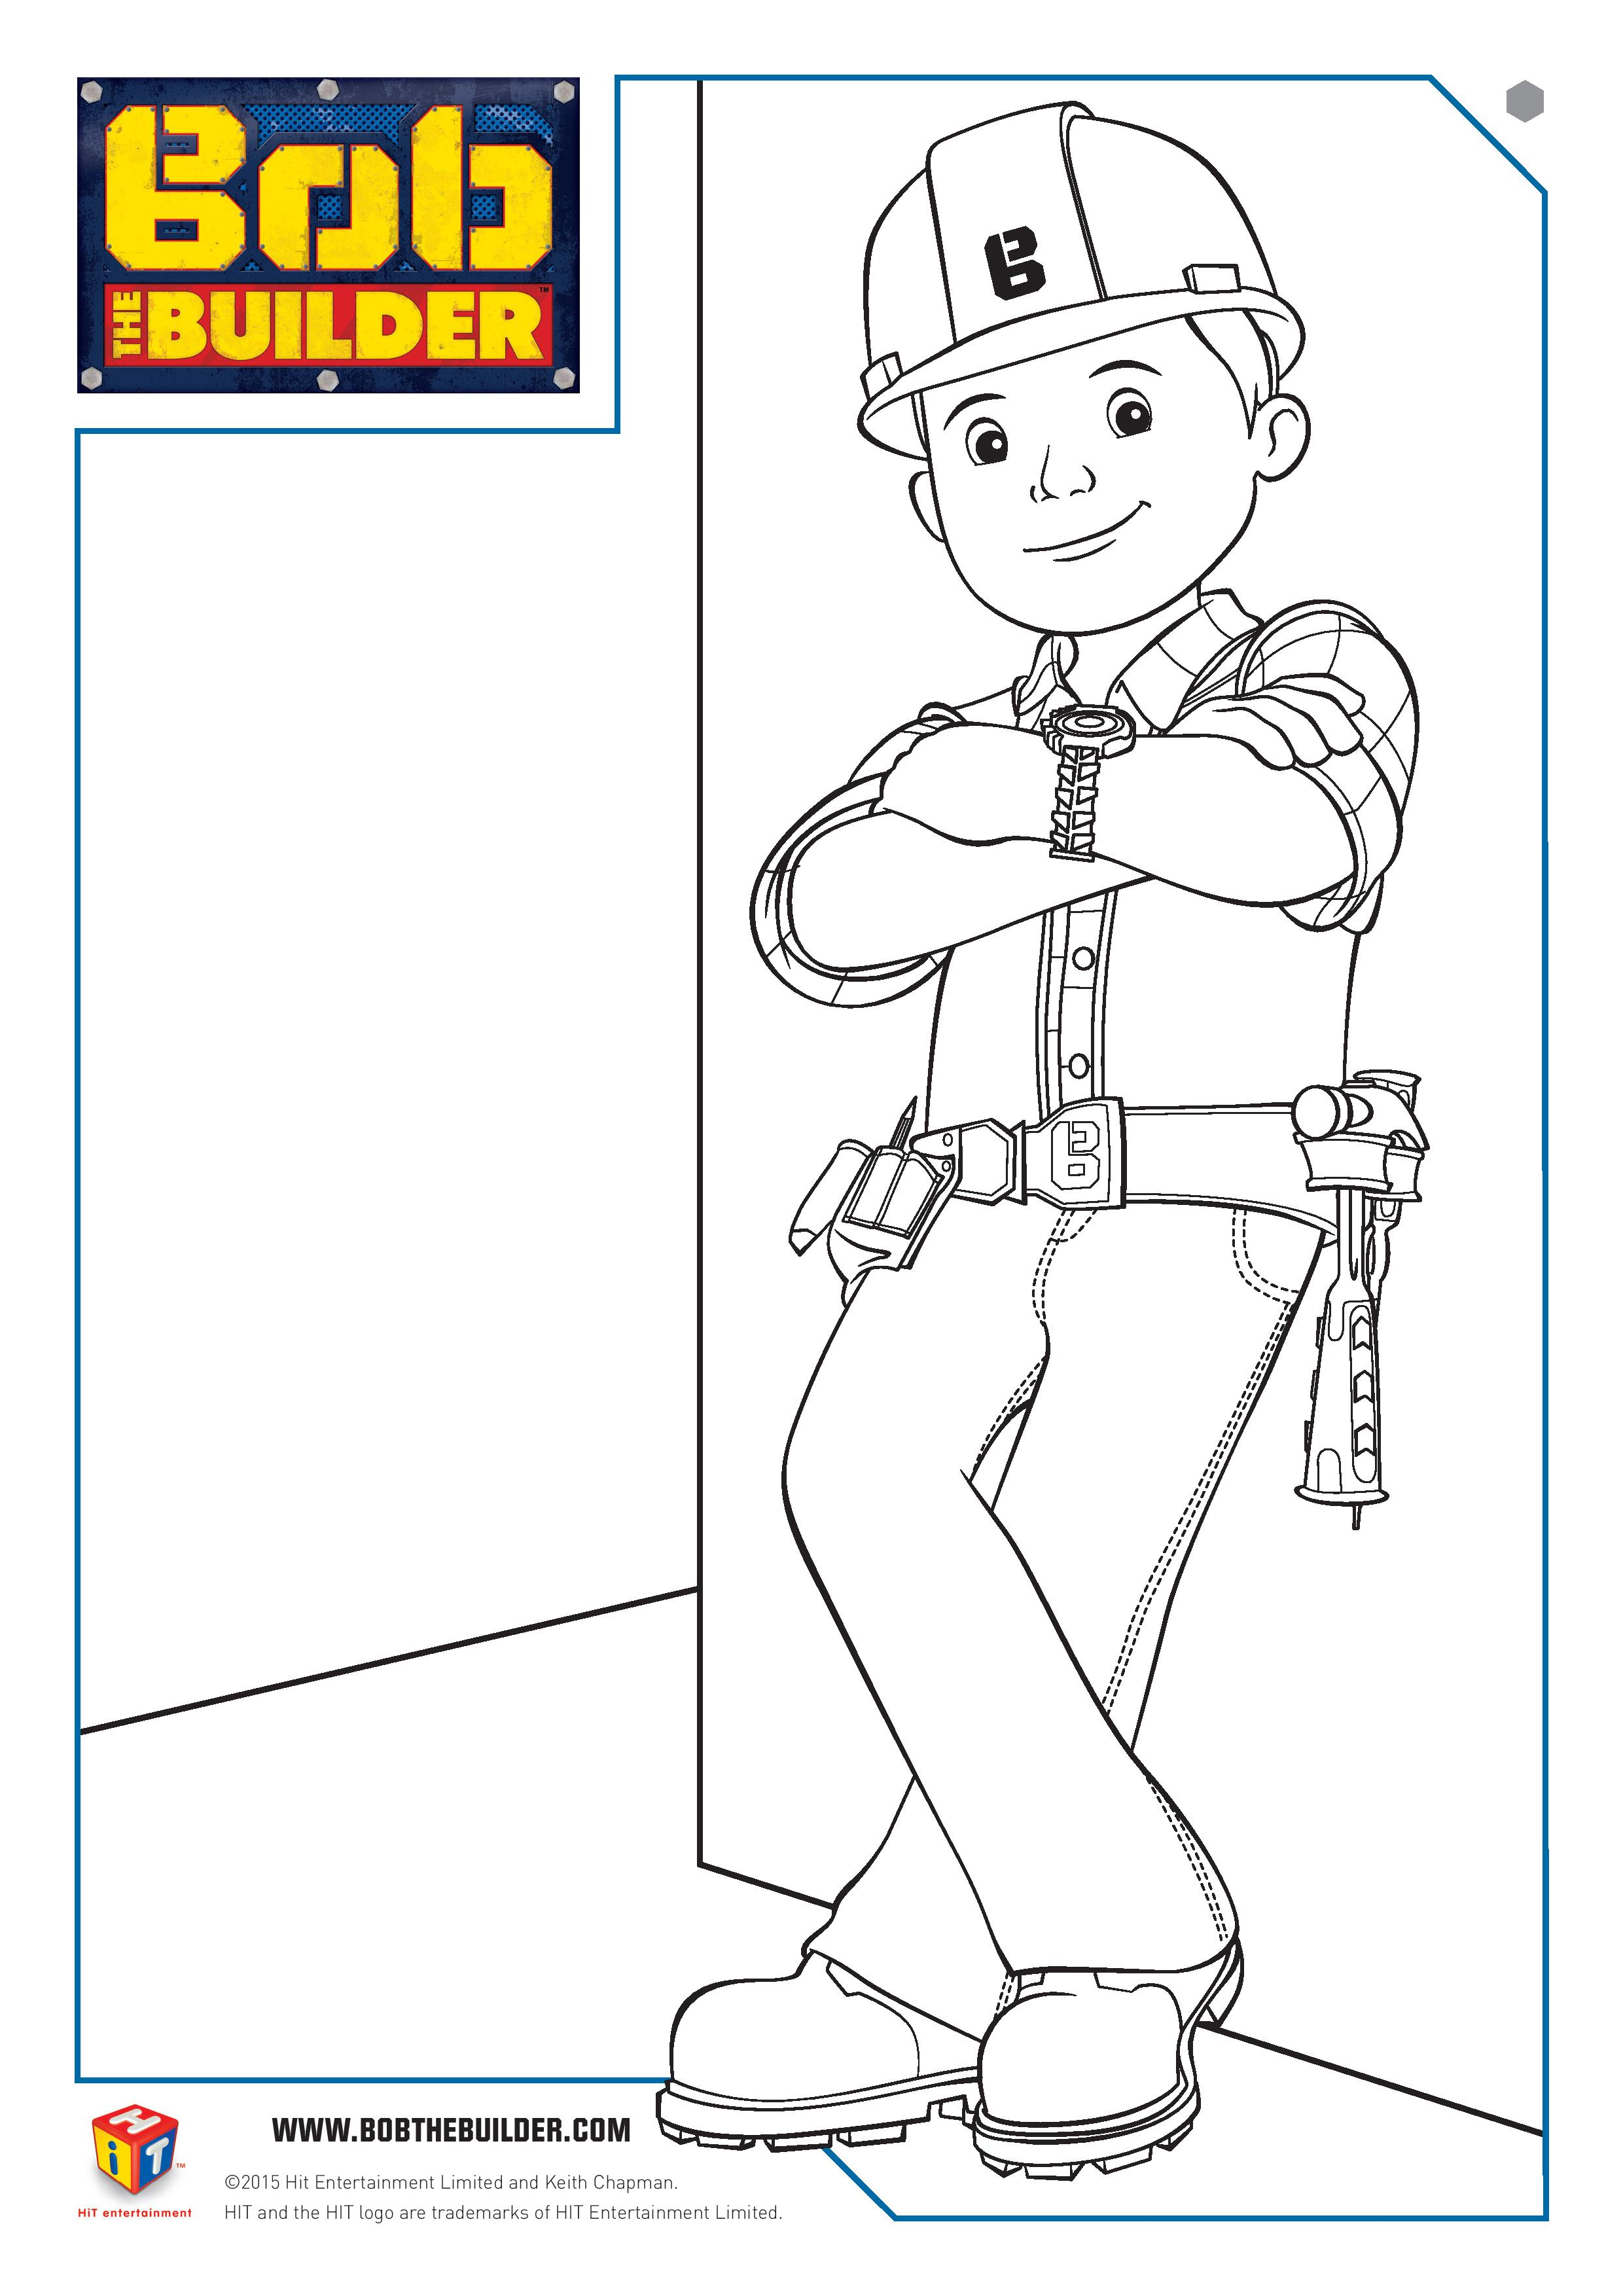 Bob the Builder Twitter Party and Colouring Page In The Playroom